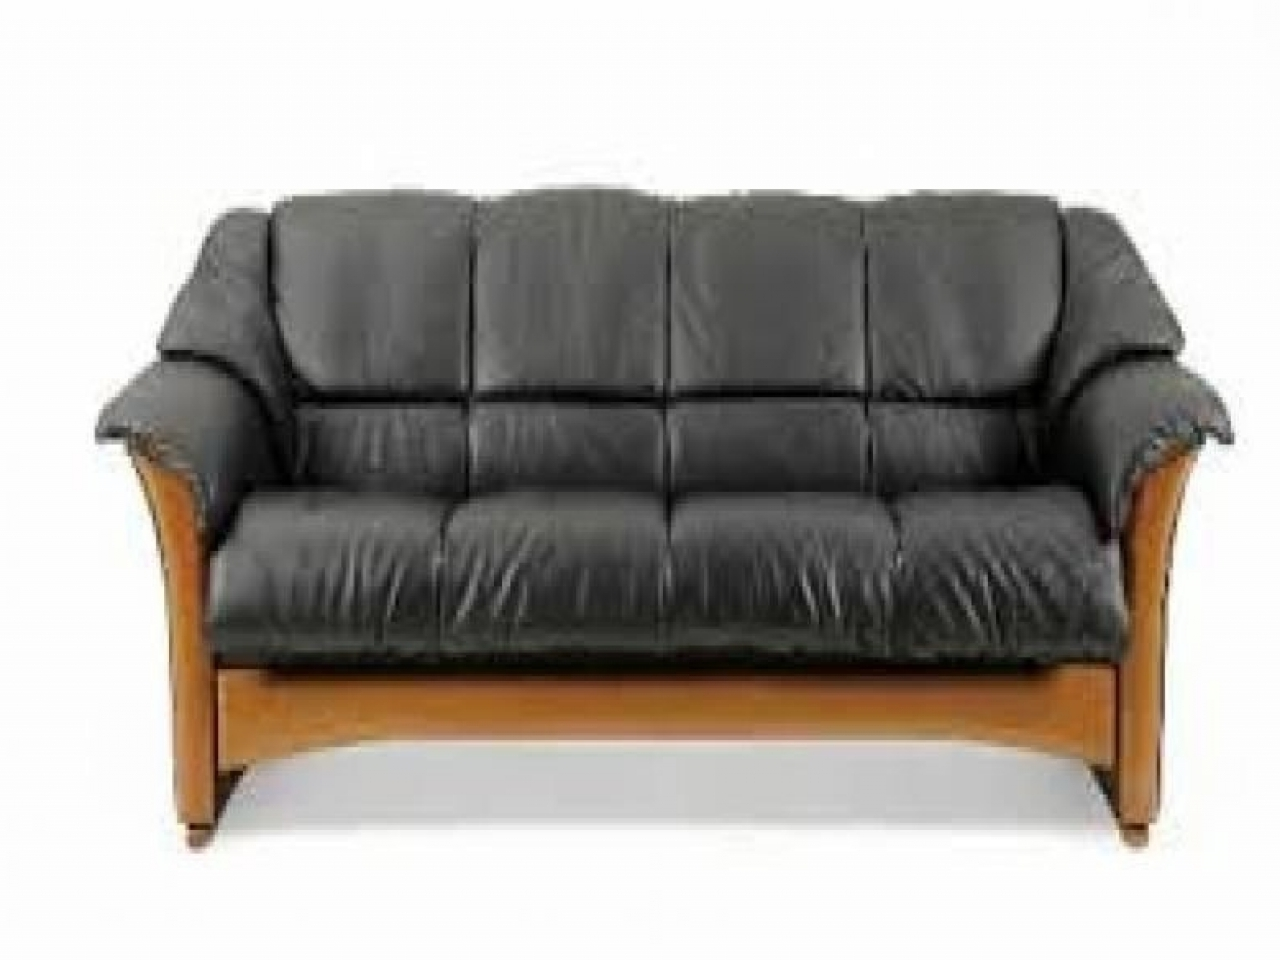 Closeout Sofas For Widely Used Sofa : Closeout Sofas Stimulating Closeout Leather Sofas (View 11 of 15)